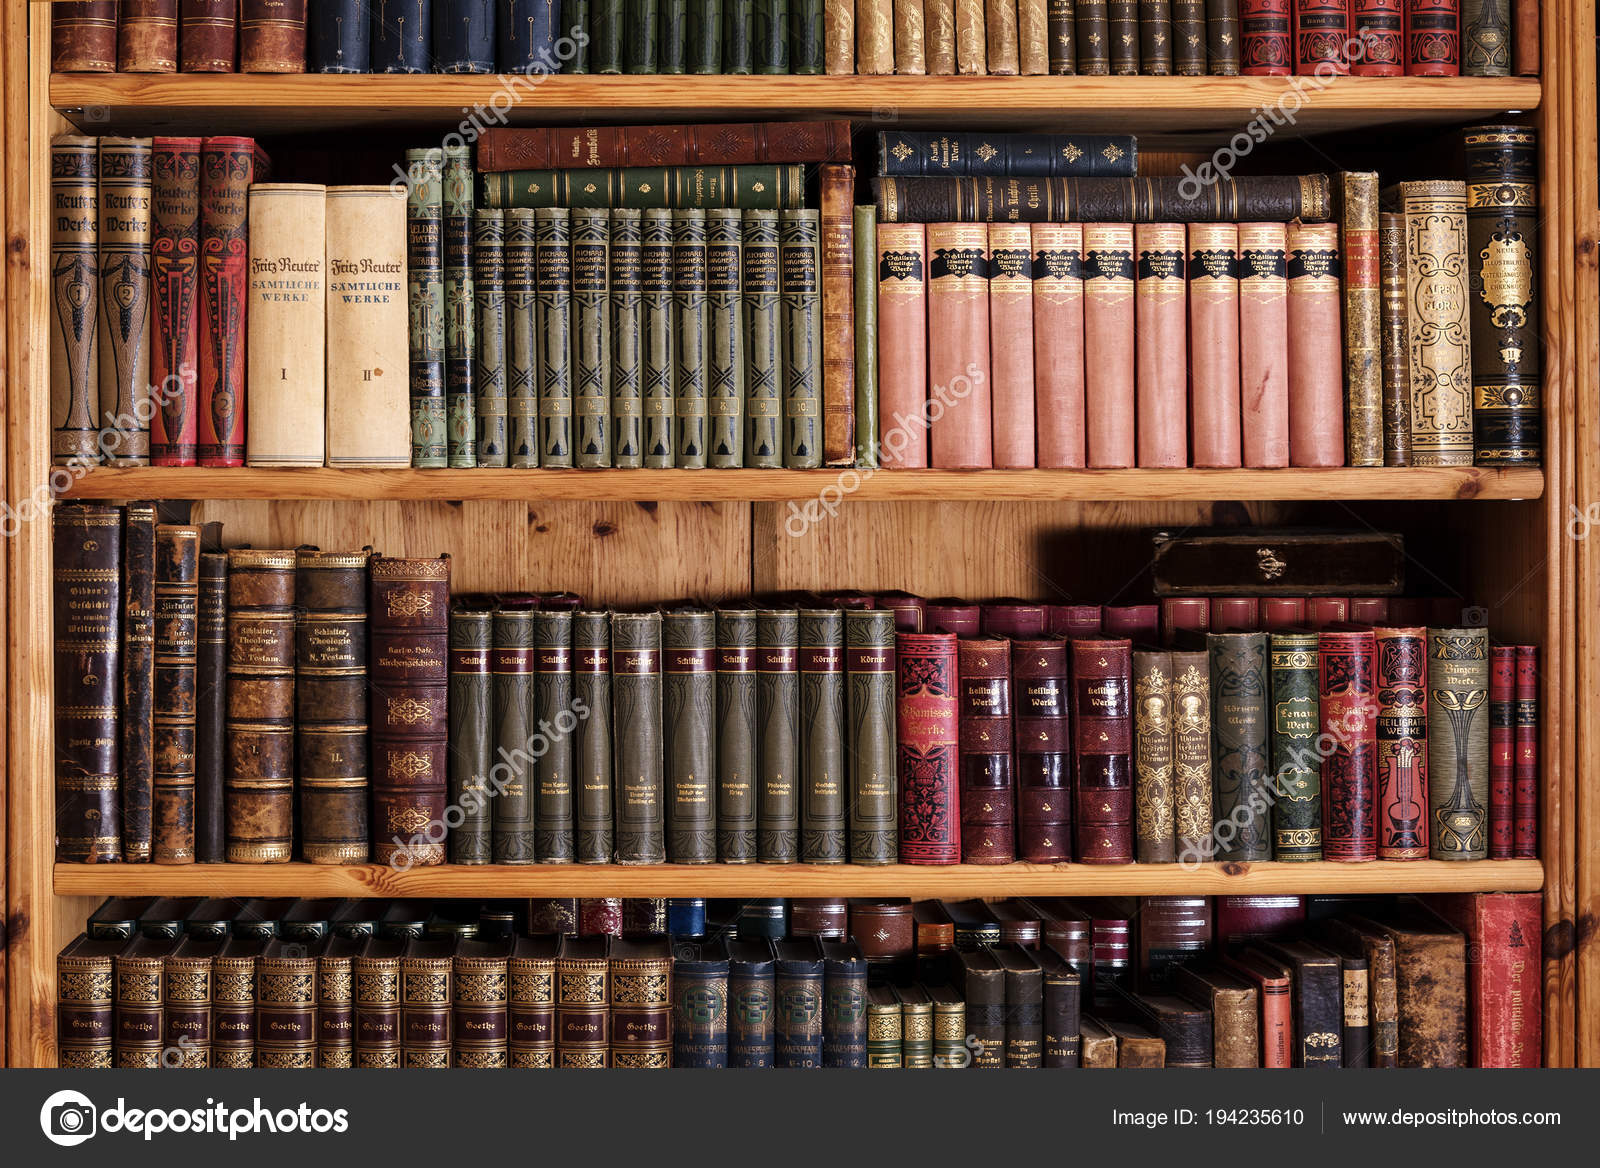 Rehna Germany April 18 2108 Wooden Bookcase With Old Vintage